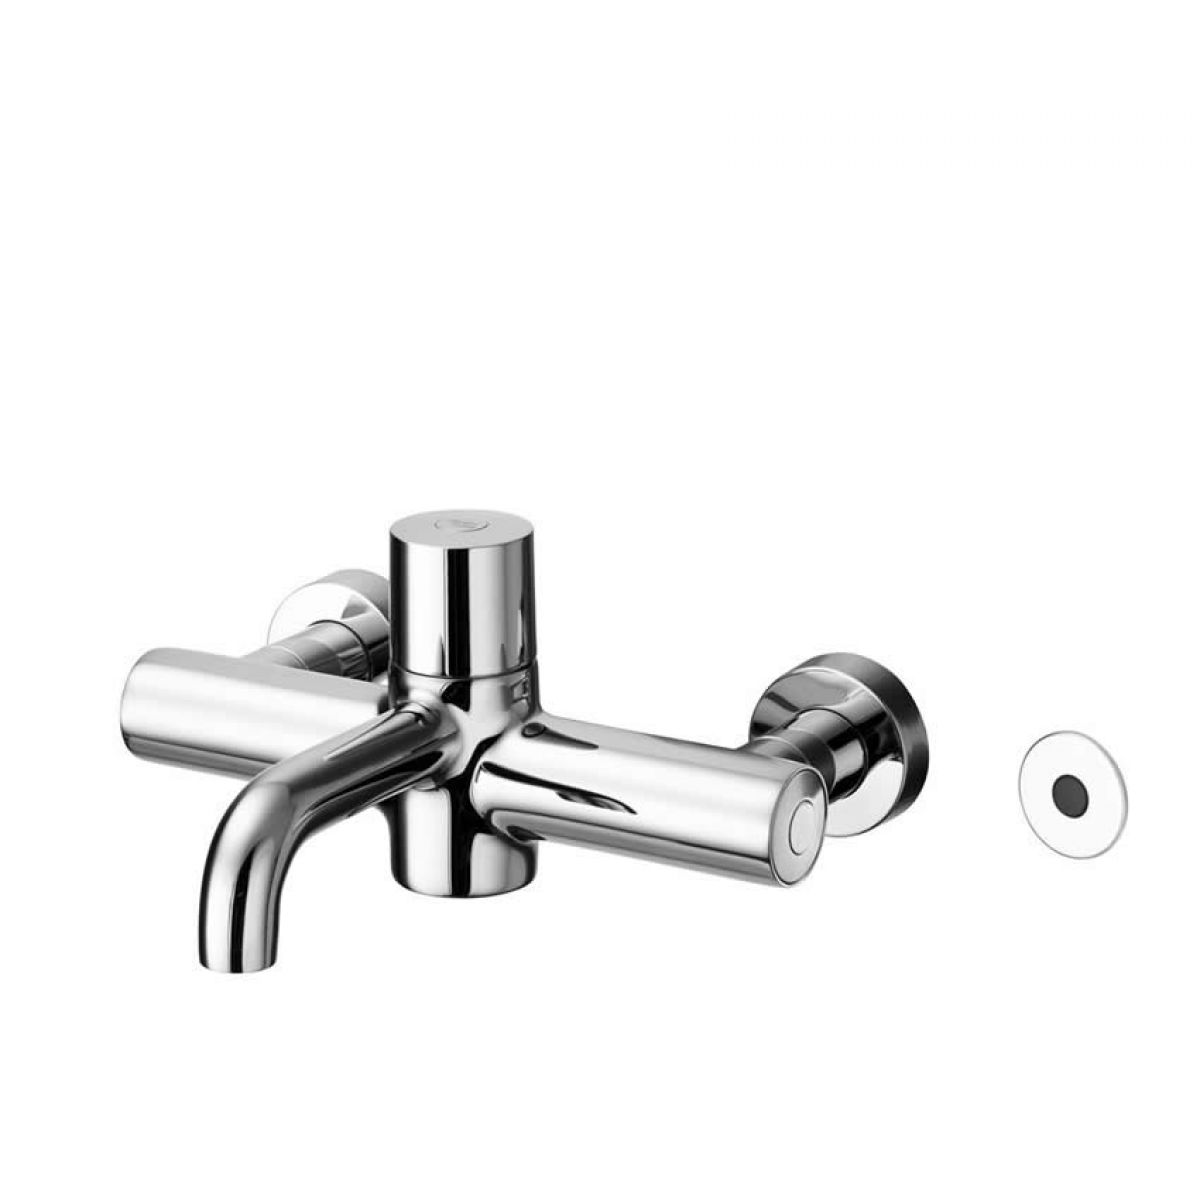 Armitage Shanks Markwik 21 Wall Mounted Thermostatic Basin Mixer With Time Flow Sensor Uk